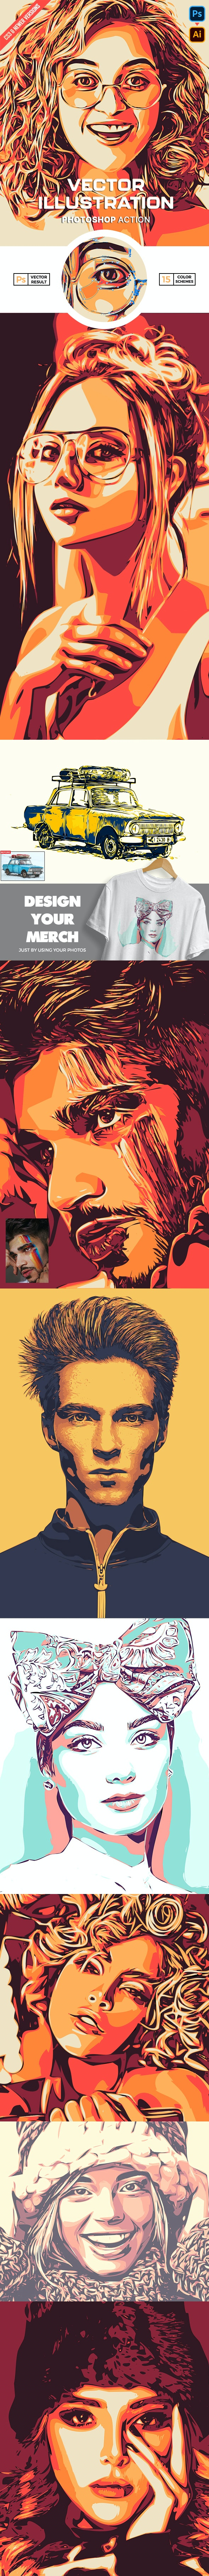 Vector Illustration Photoshop Action - Photo Effects Actions